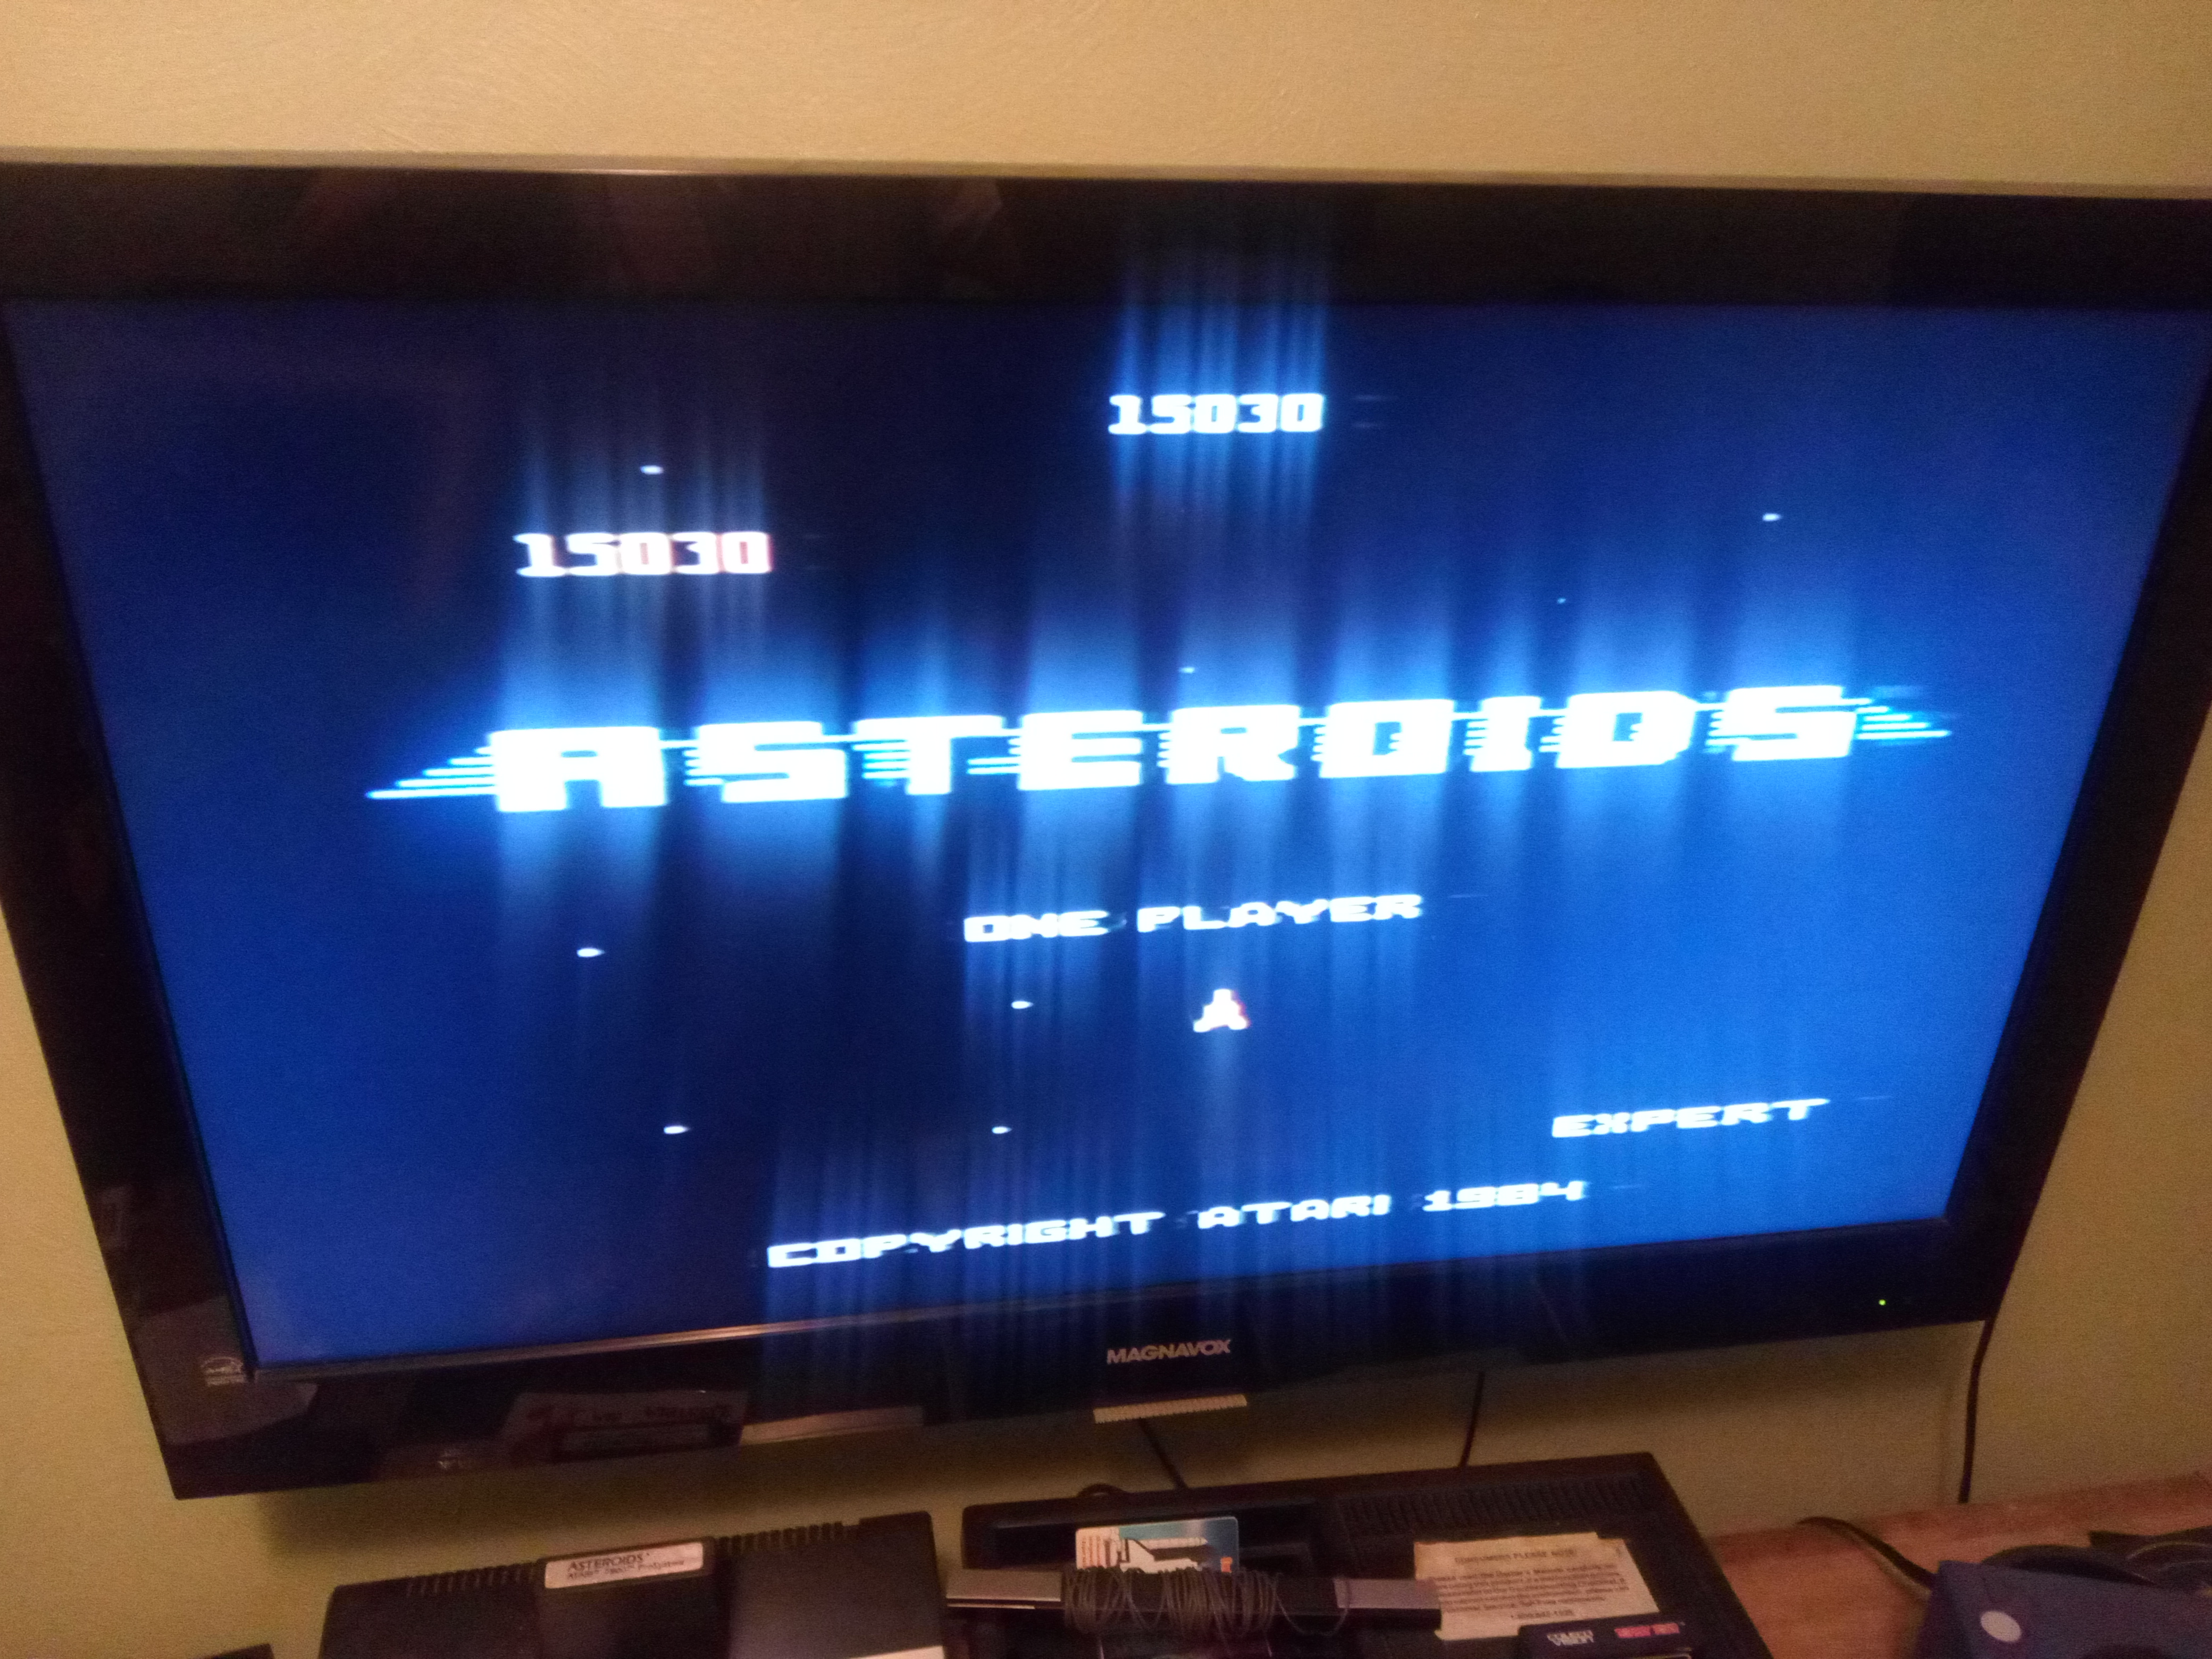 Pjsteele: Asteroids: Expert (Atari 7800) 15,030 points on 2019-04-25 19:08:36